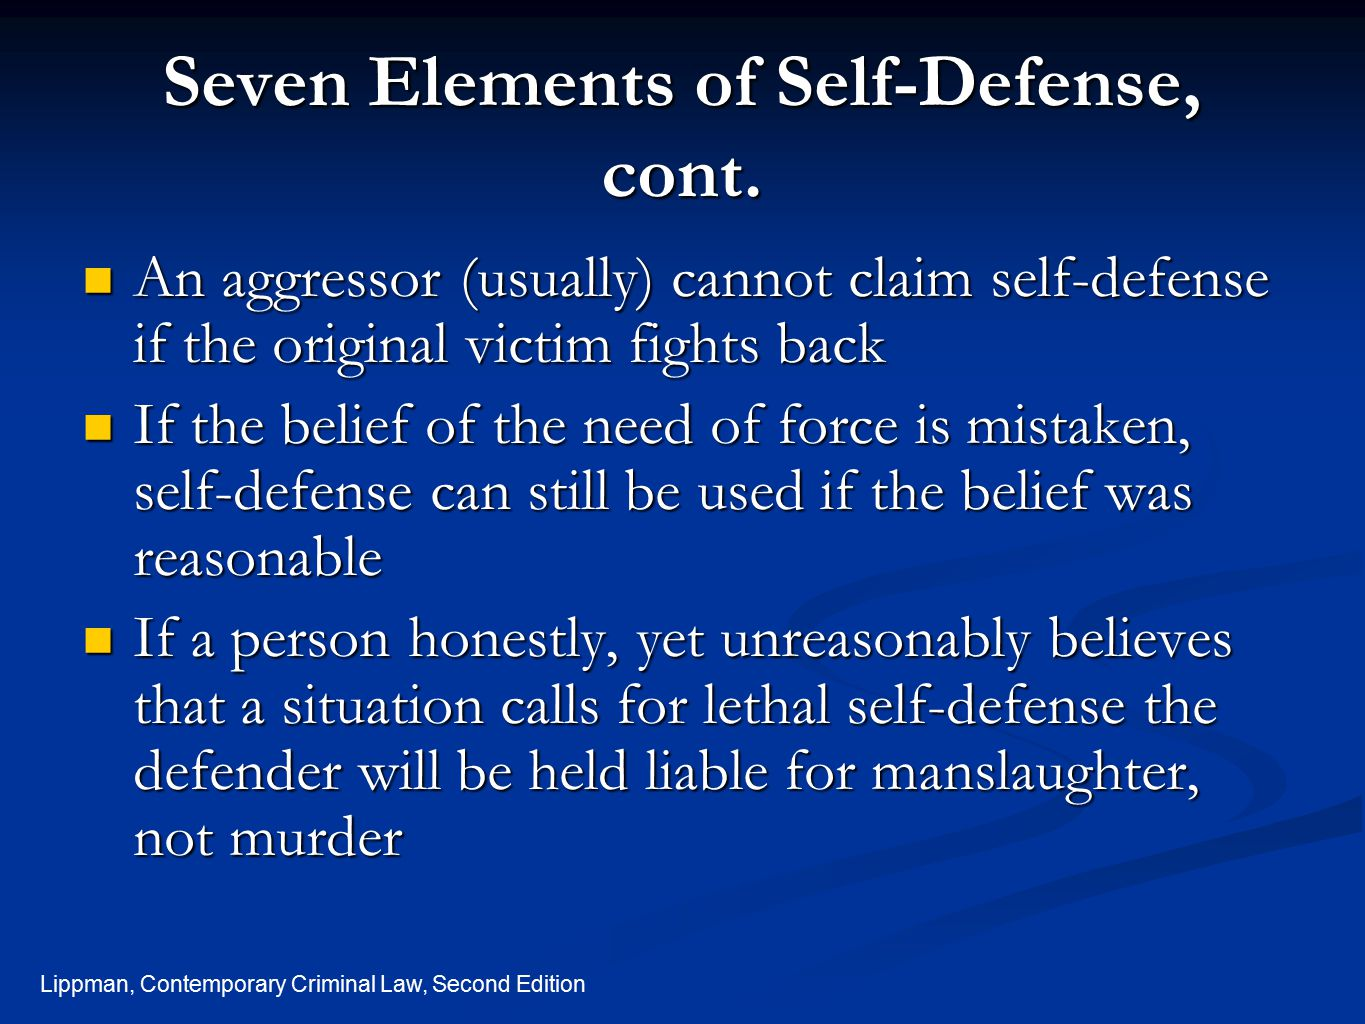 Seven Elements of Self-Defense, cont.